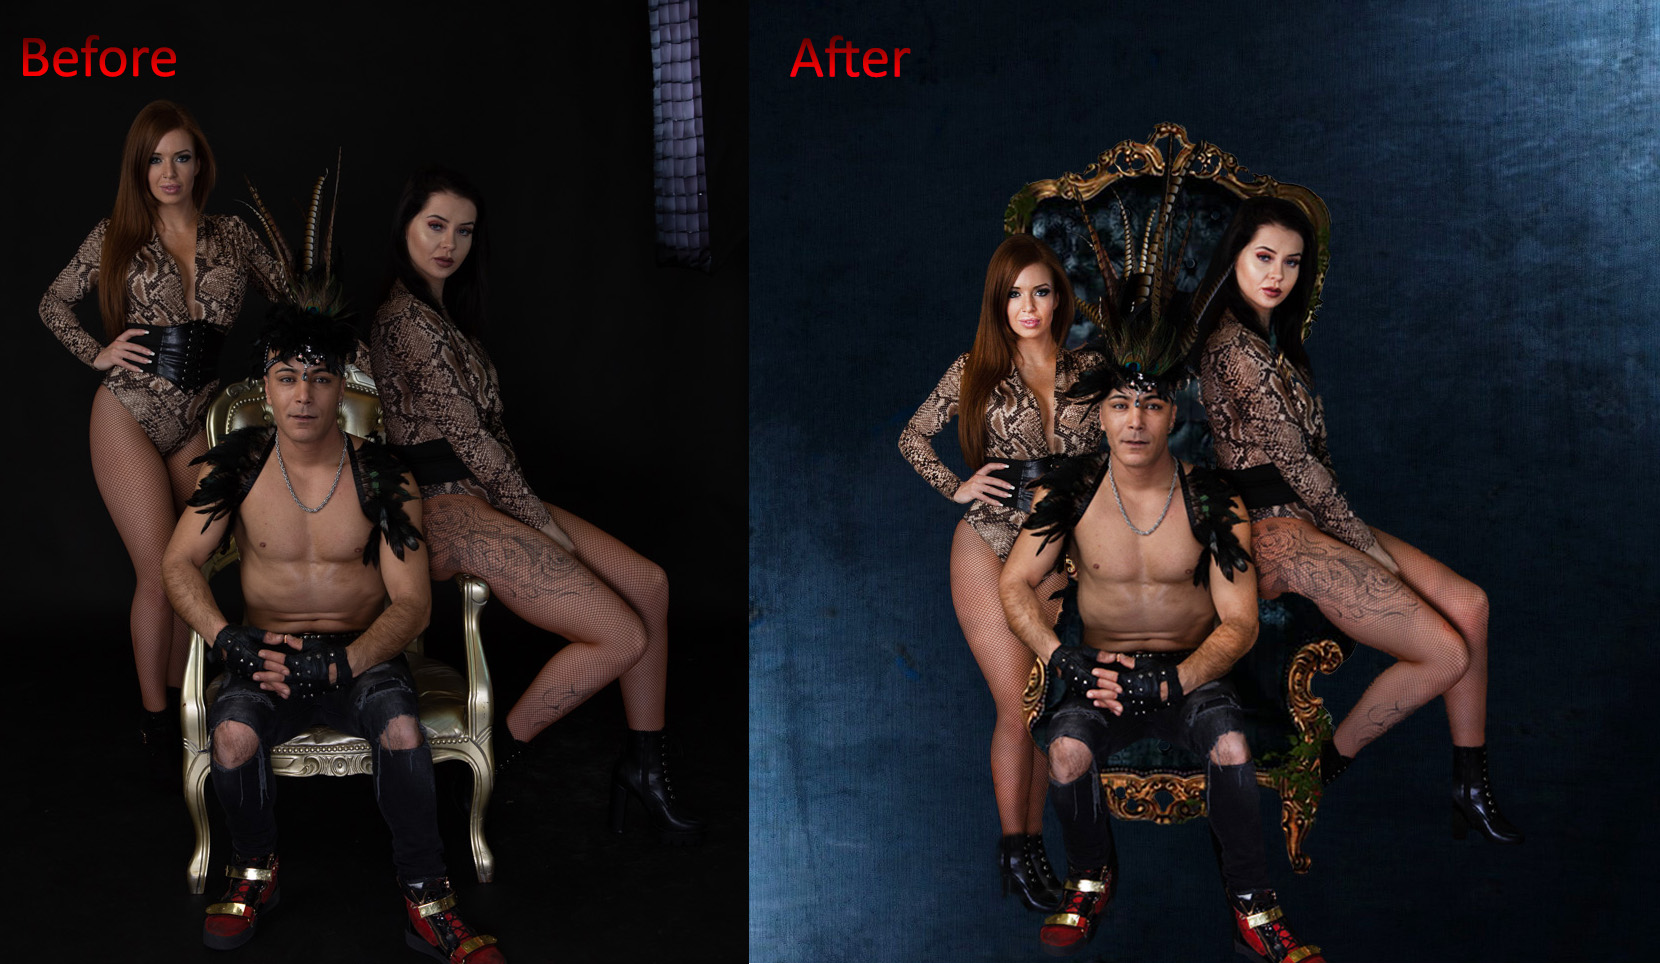 photoshop editing,  aftertouch,  background removal, just tell me what you want to do